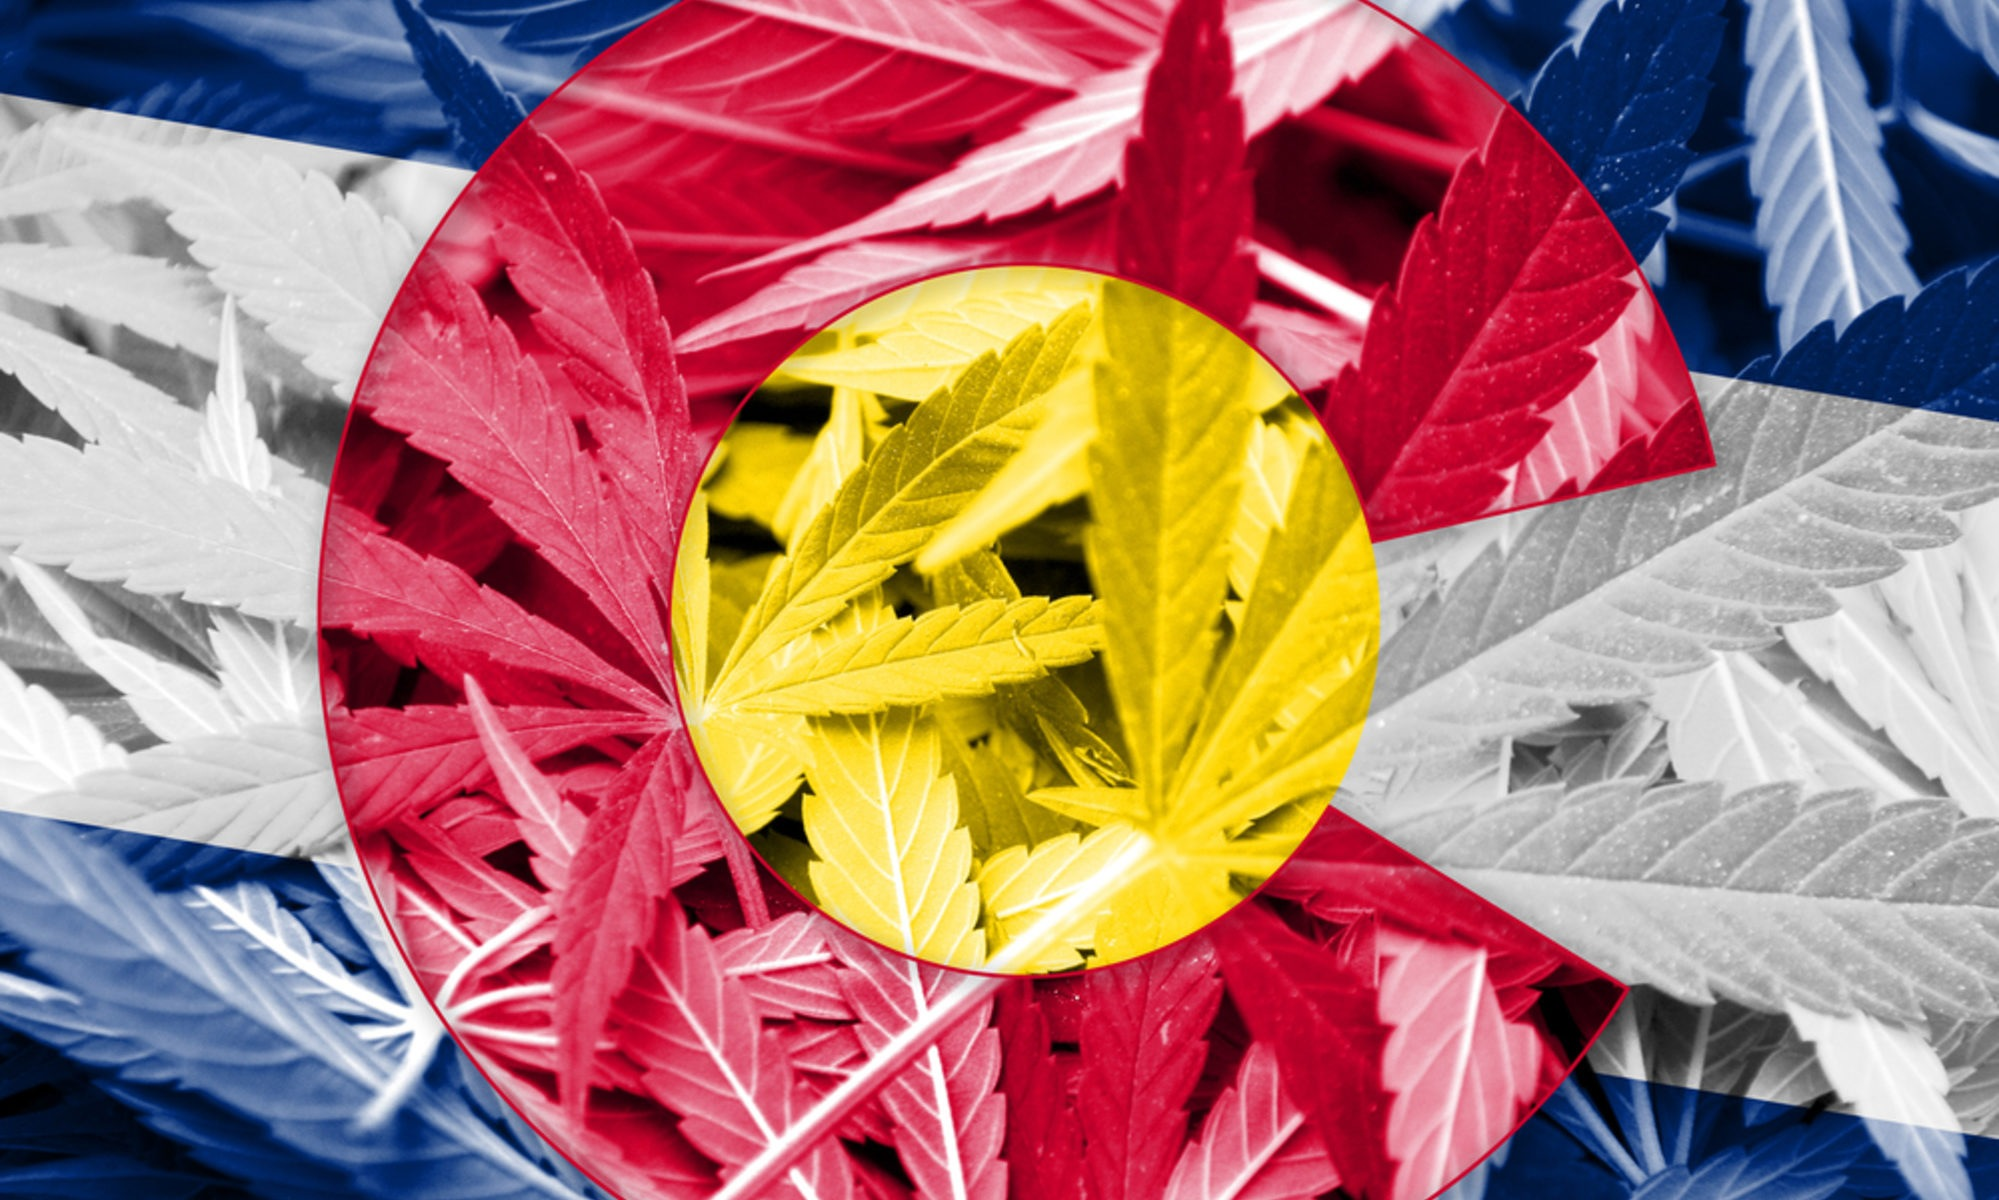 Legalization of marijuana in Colorado